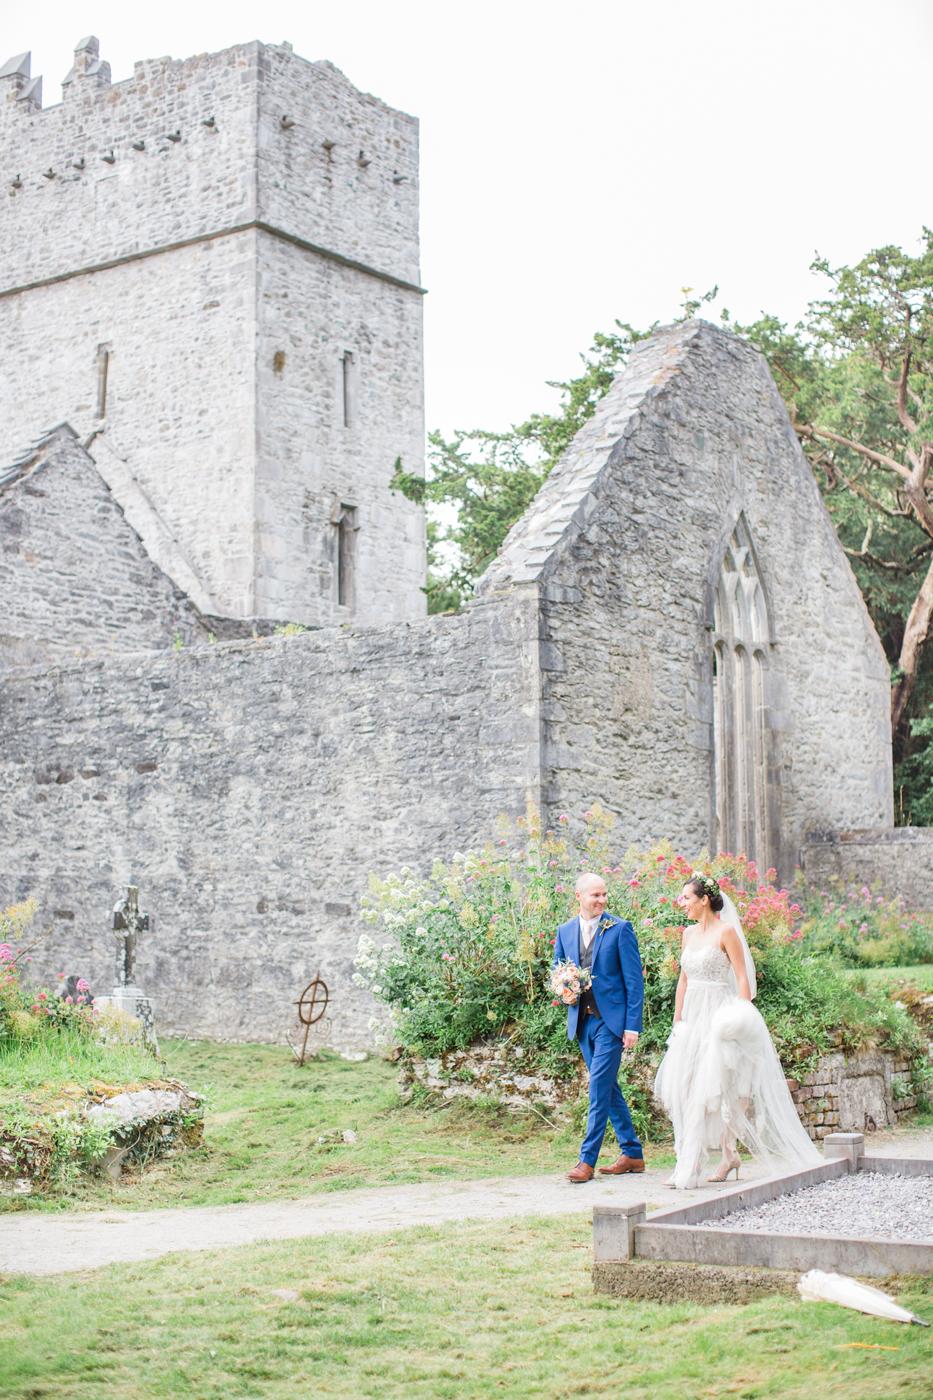 Romantic Irish Wedding by Cecelina Photography 38